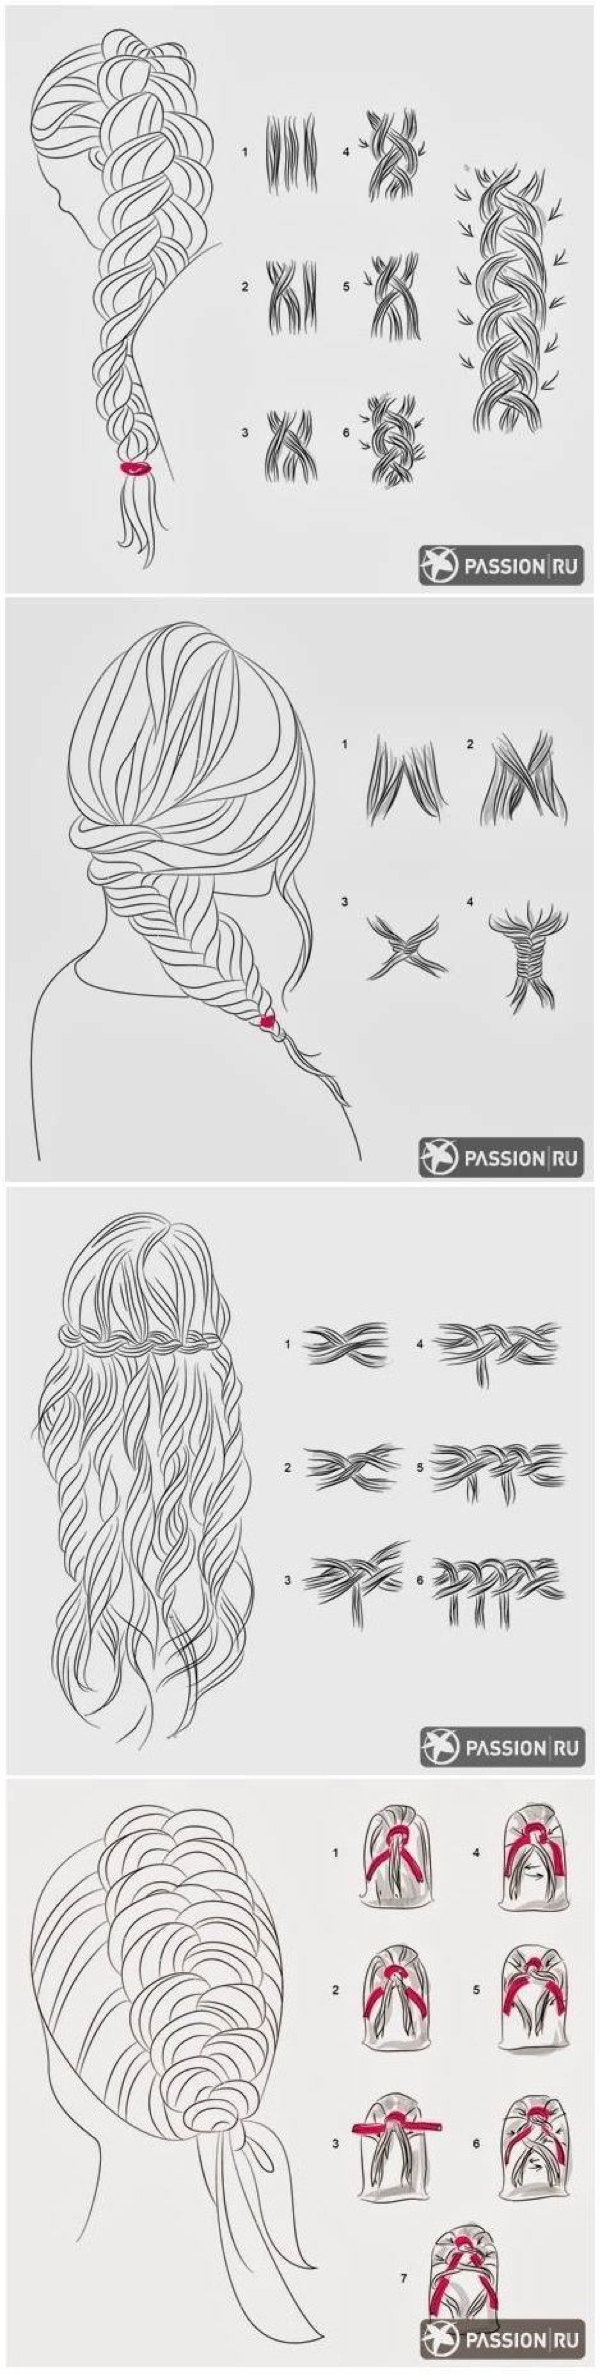 how to do braids illustration